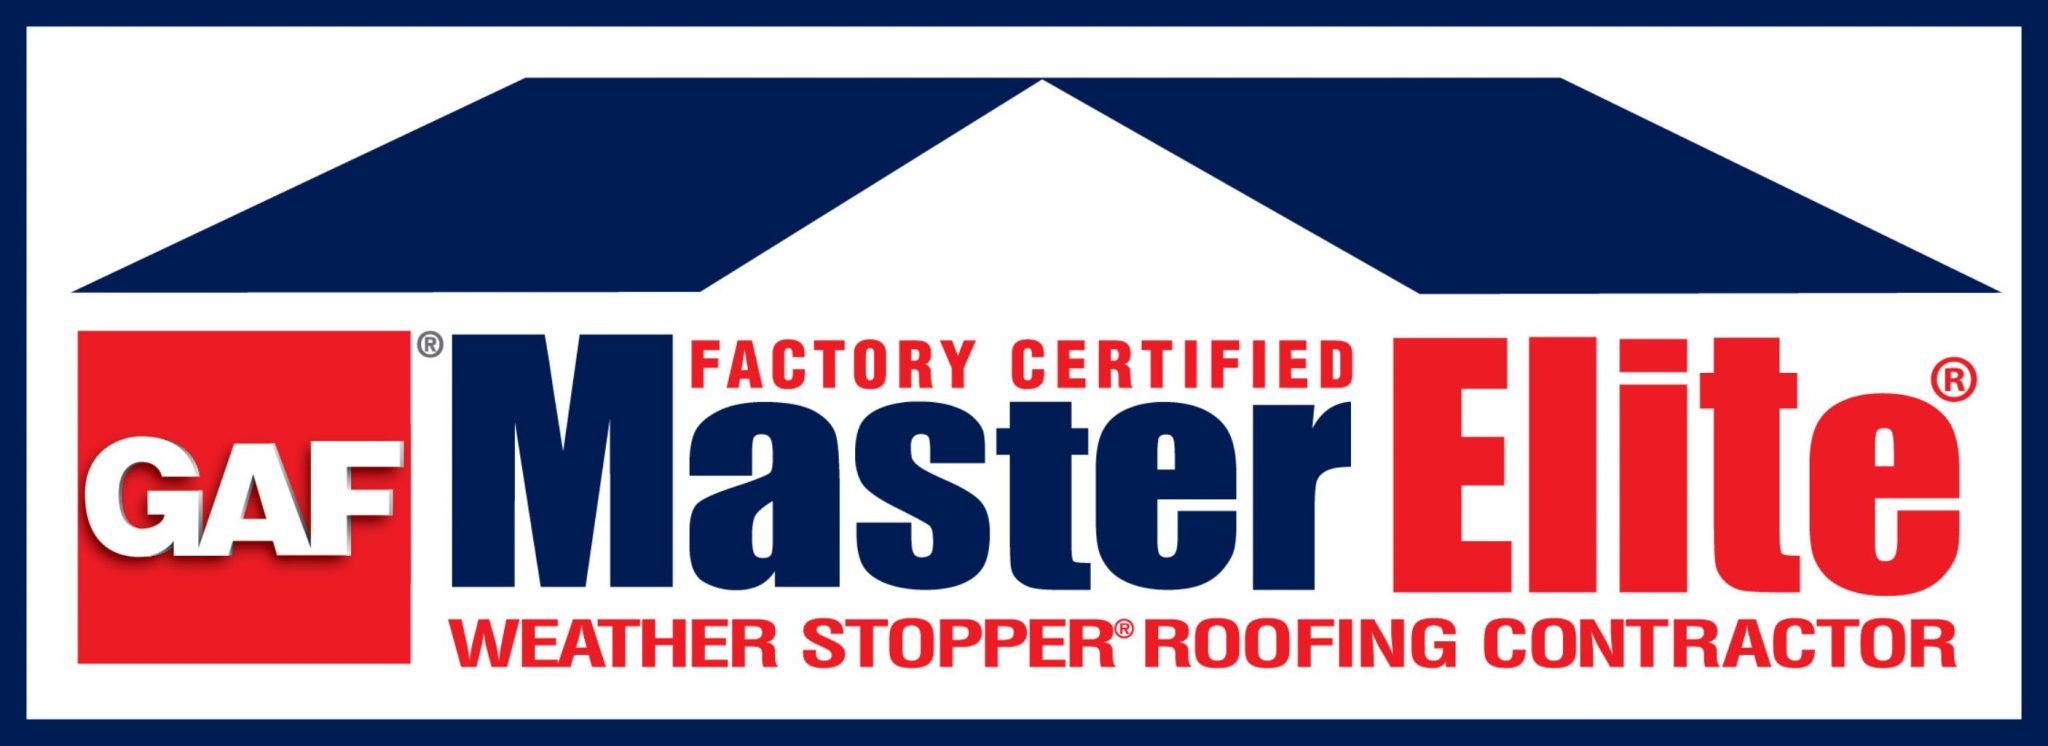 GAF-Master-Elite-Contractor-Large-Color